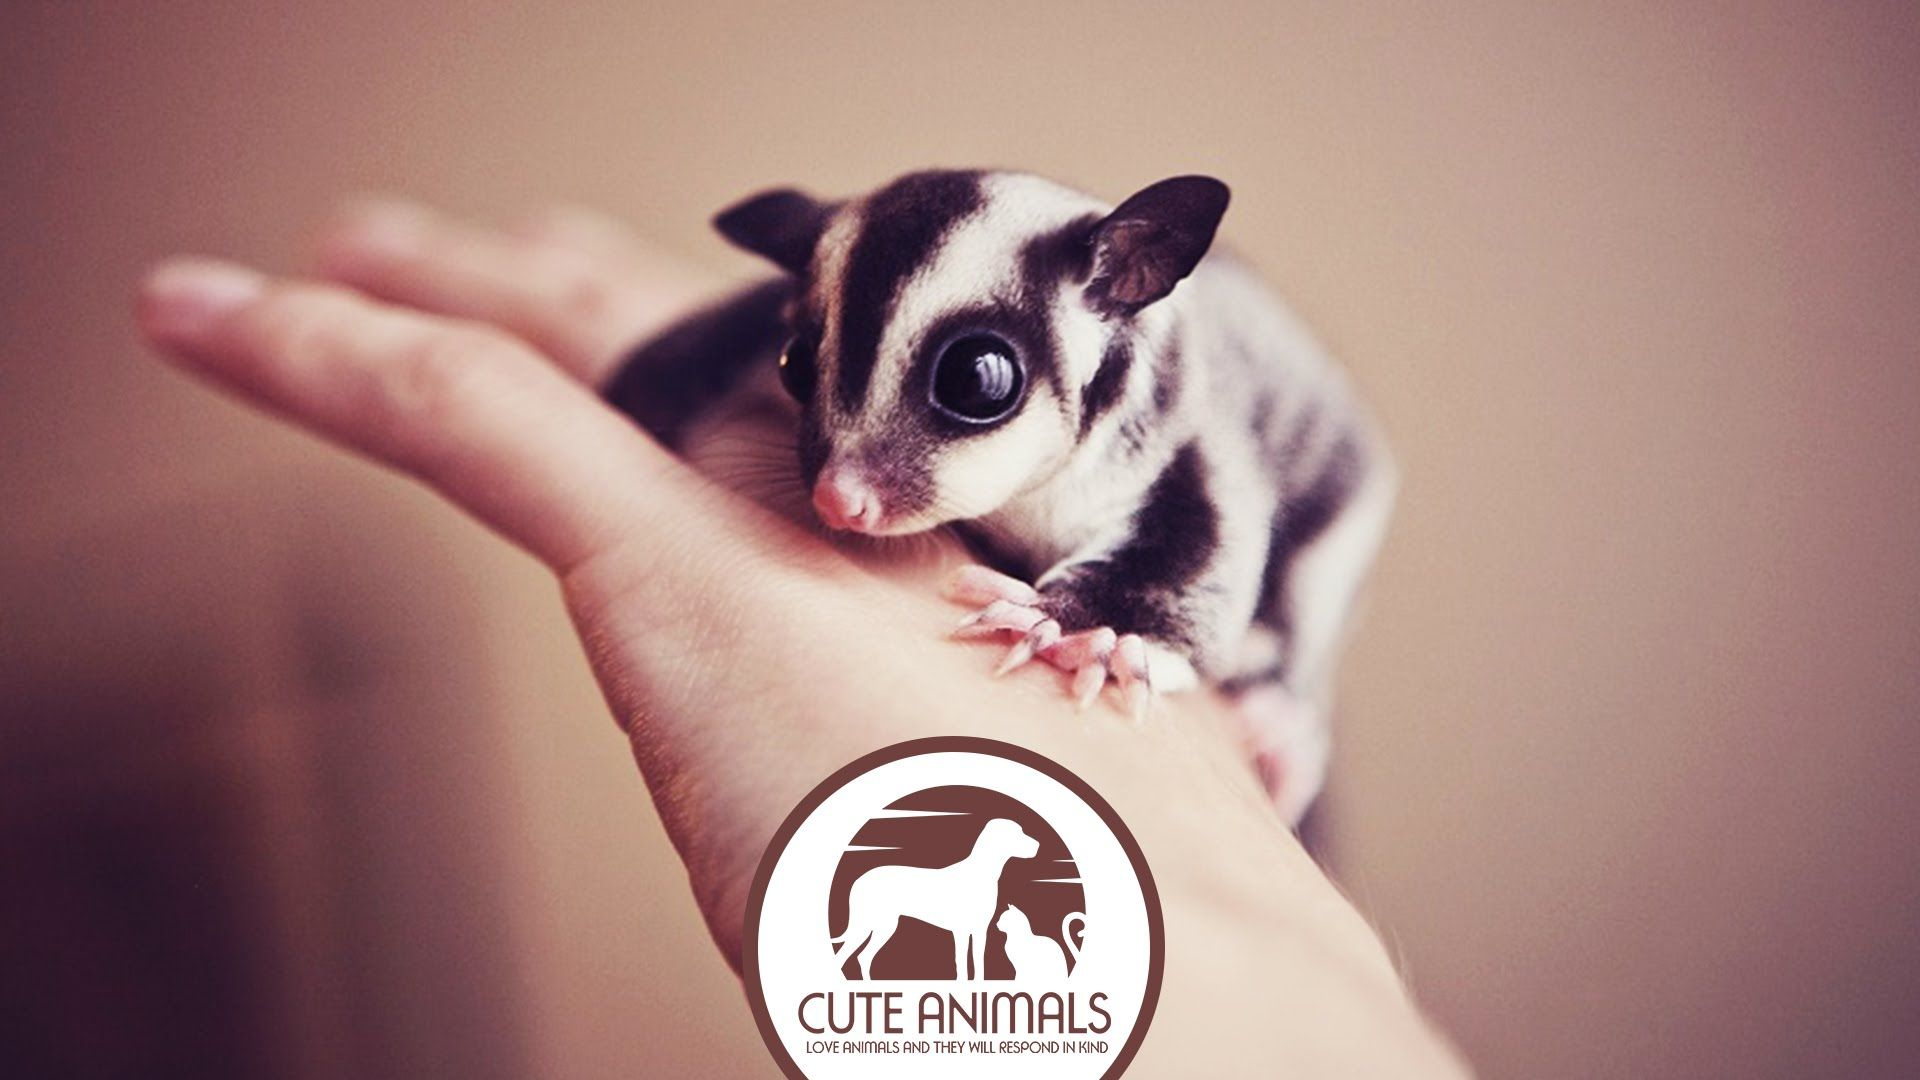 These Cute Baby Animals Will Melt Your Heart In The Animal - 28 cute baby animals will melt heart